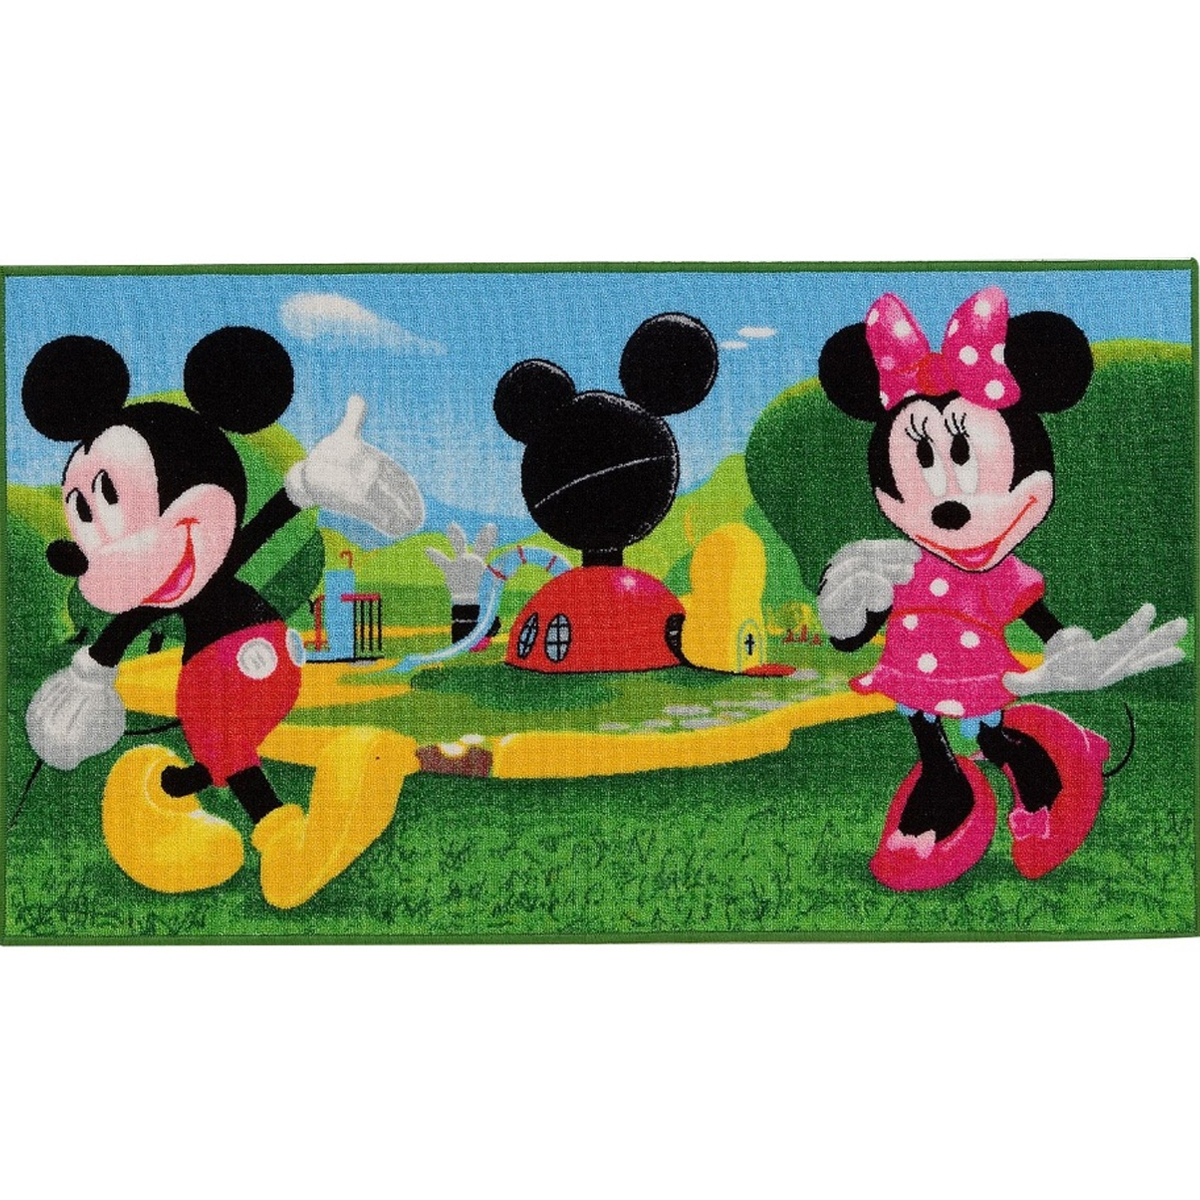 New 28 minnie mouse area rug unavailable listing on for Decoration maison mickey